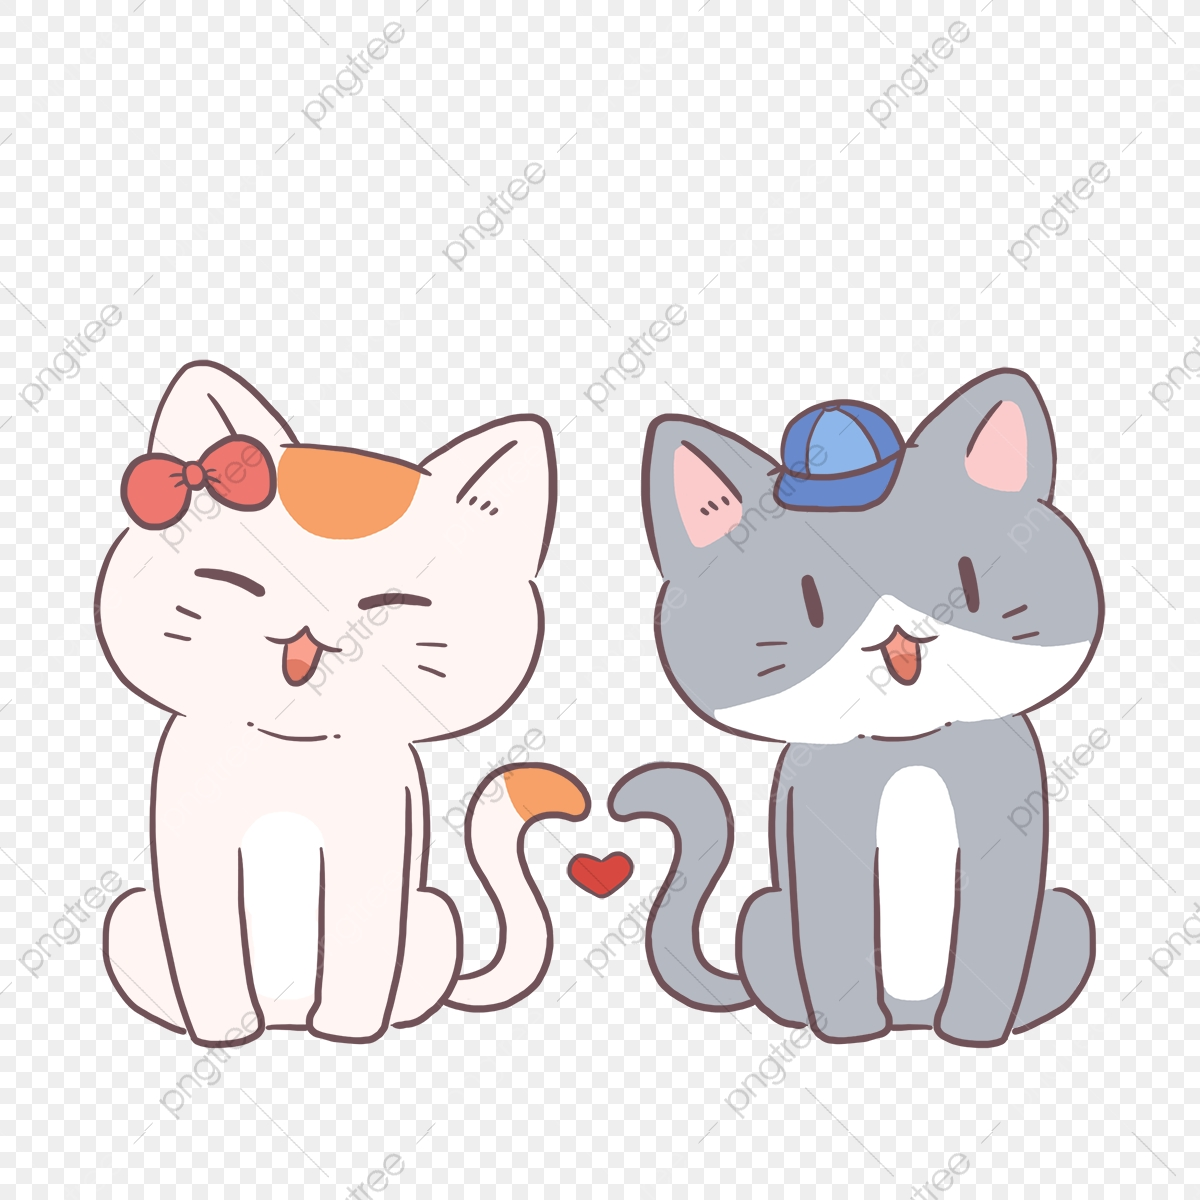 Cute Cat Cartoon Couple Avatar Cartoon Couple Avatar Cat Love Png Transparent Clipart Image And Psd File For Free Download